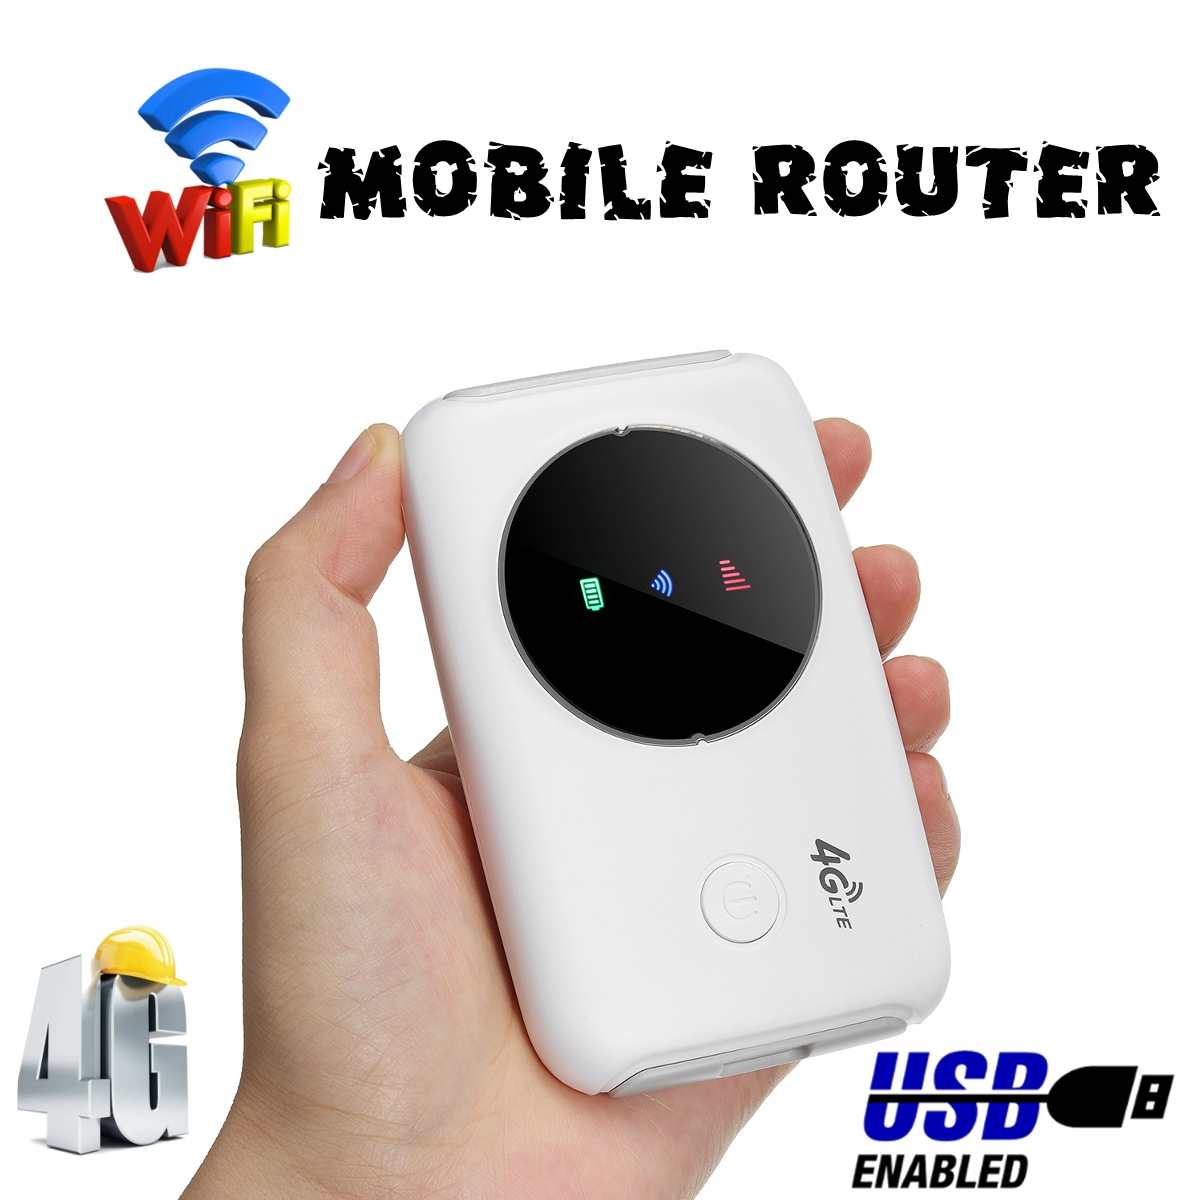 4G LTE Wireless Router Mobile Router Portable WiFi Hotspot